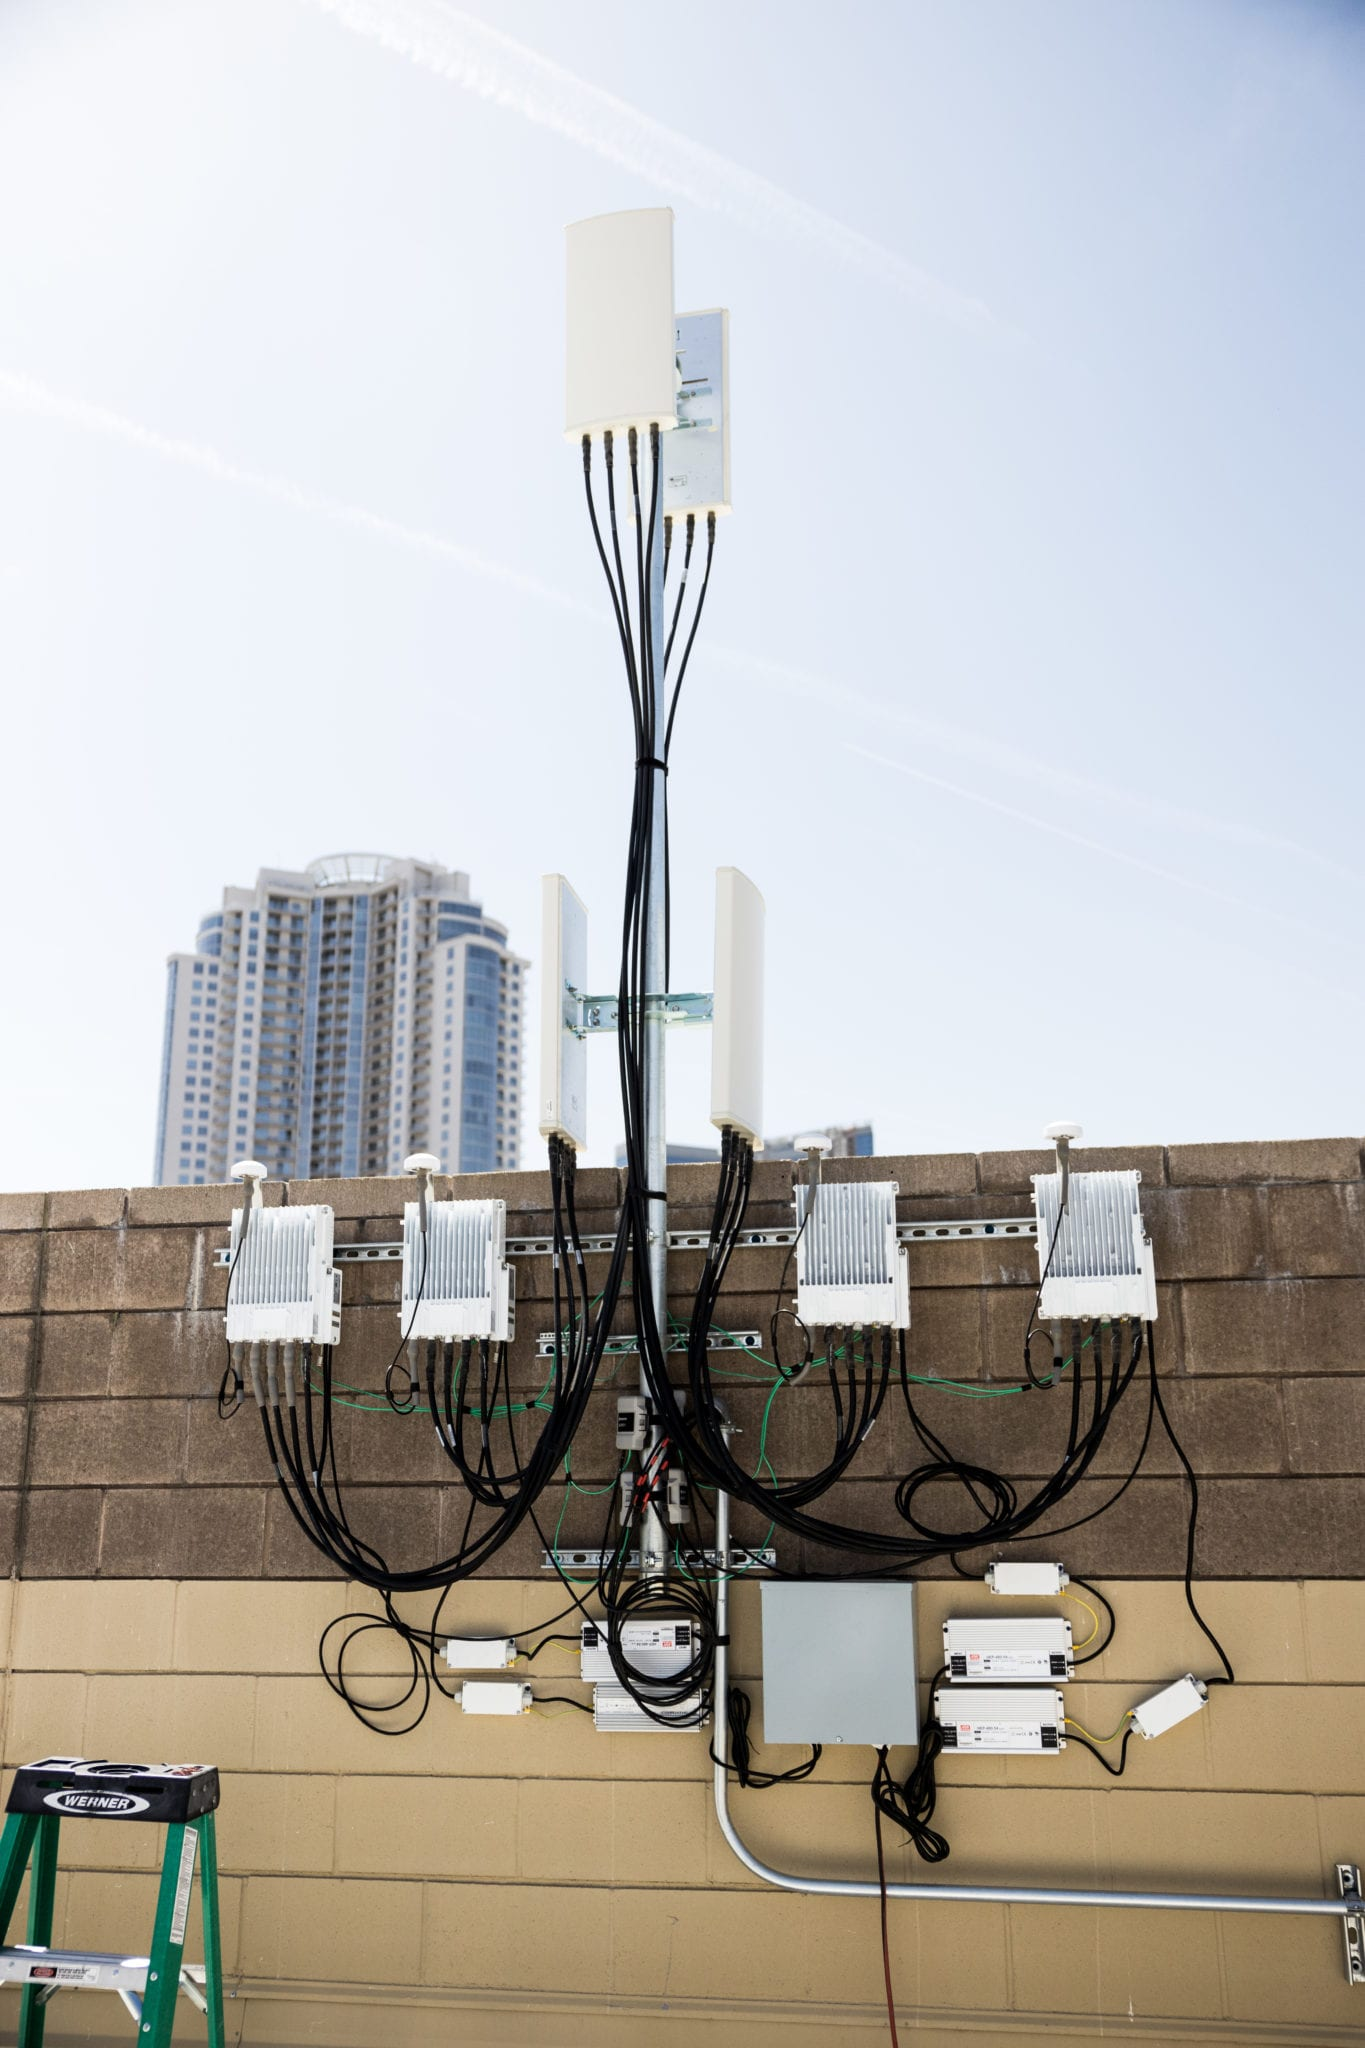 Las Vegas deploys 'largest private municipal LTE network' – in just 45 days